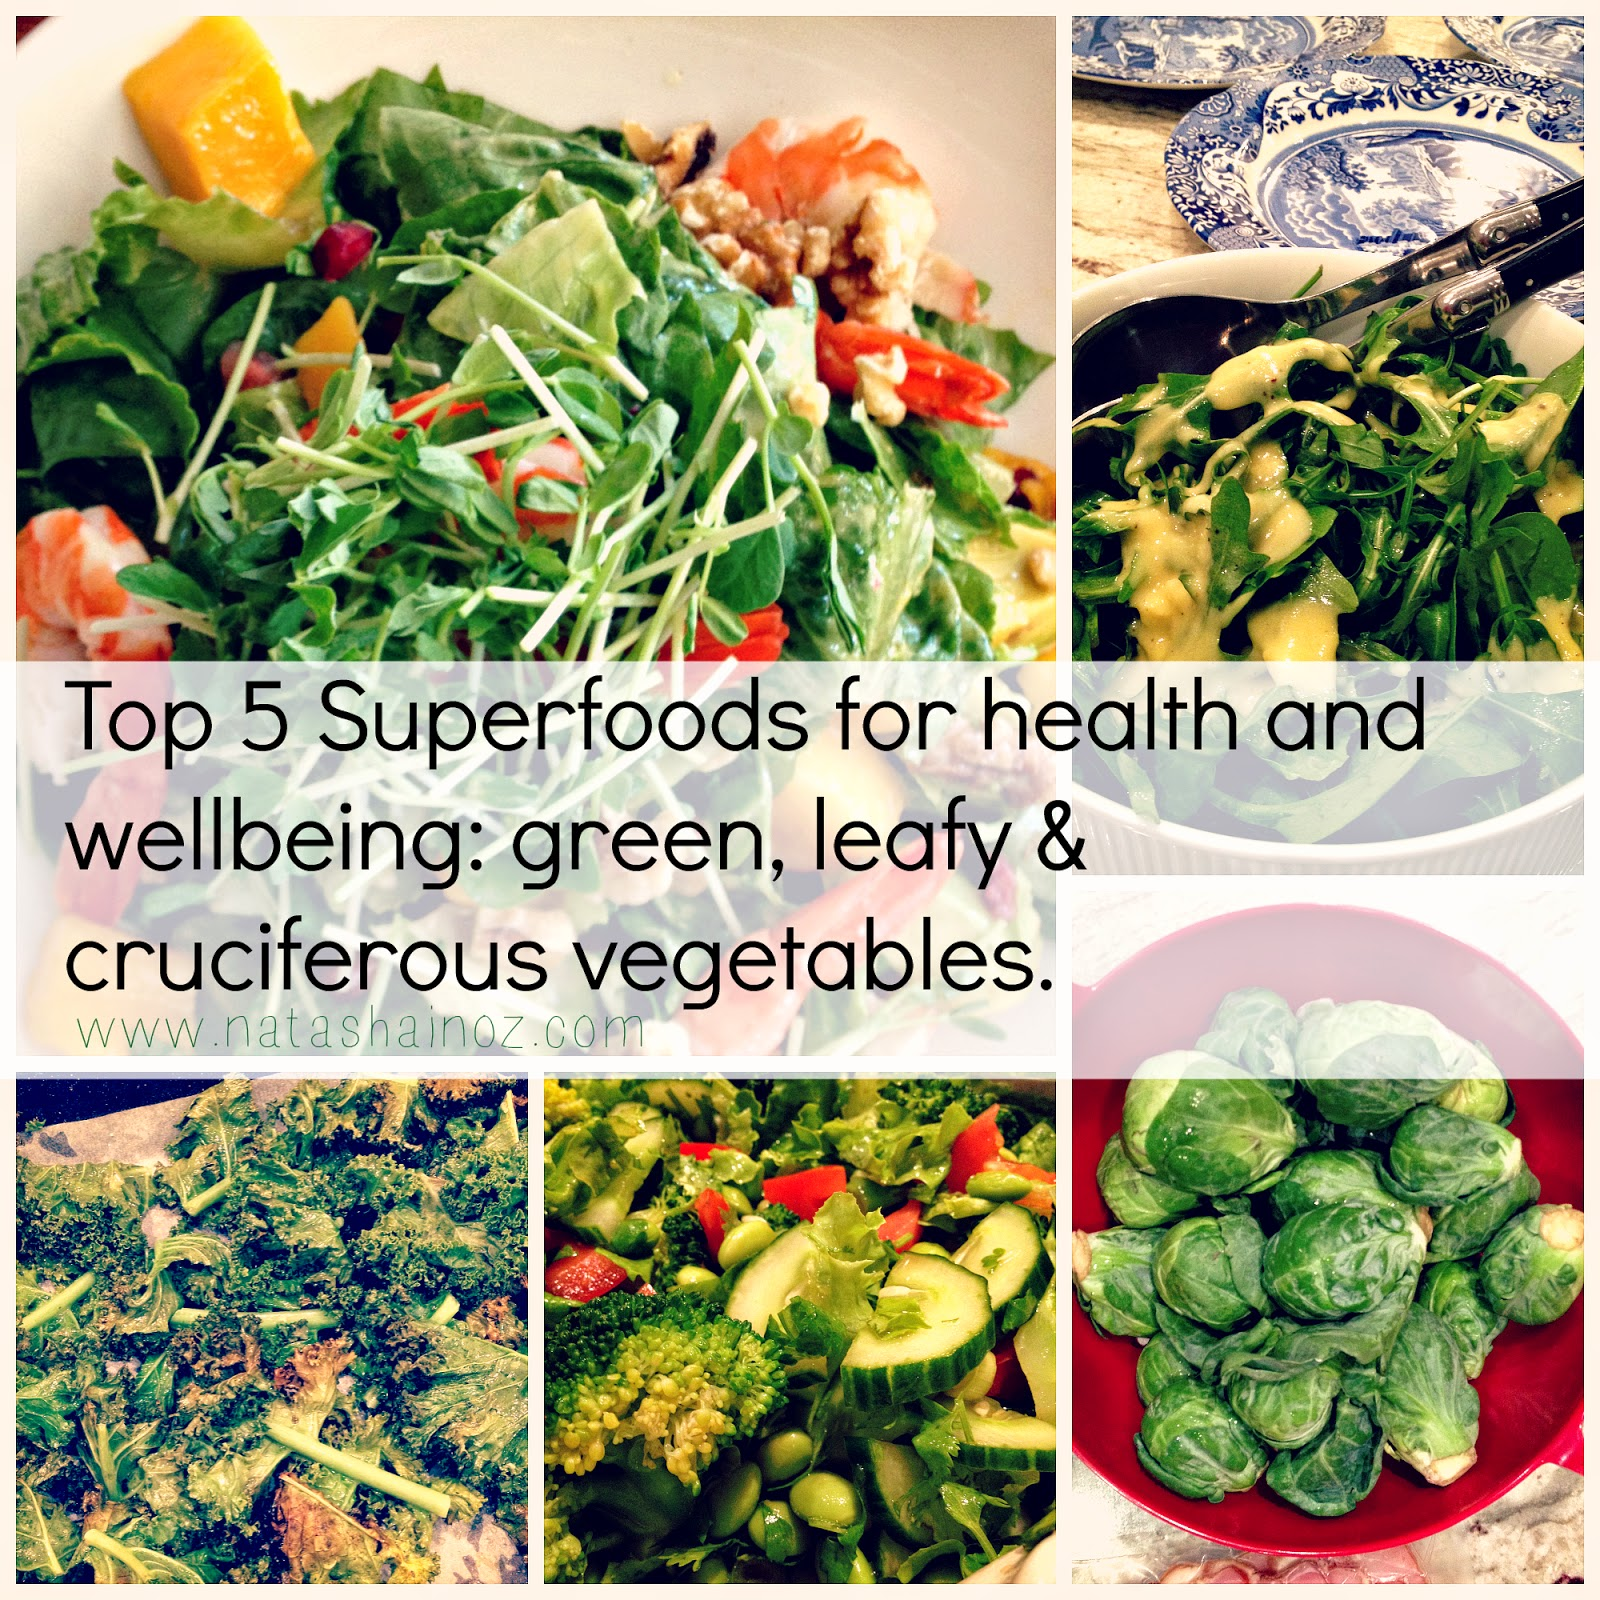 Top 5 Superfoods For Health and Wellbeing, Natasha in Oz, green leafy vegetables